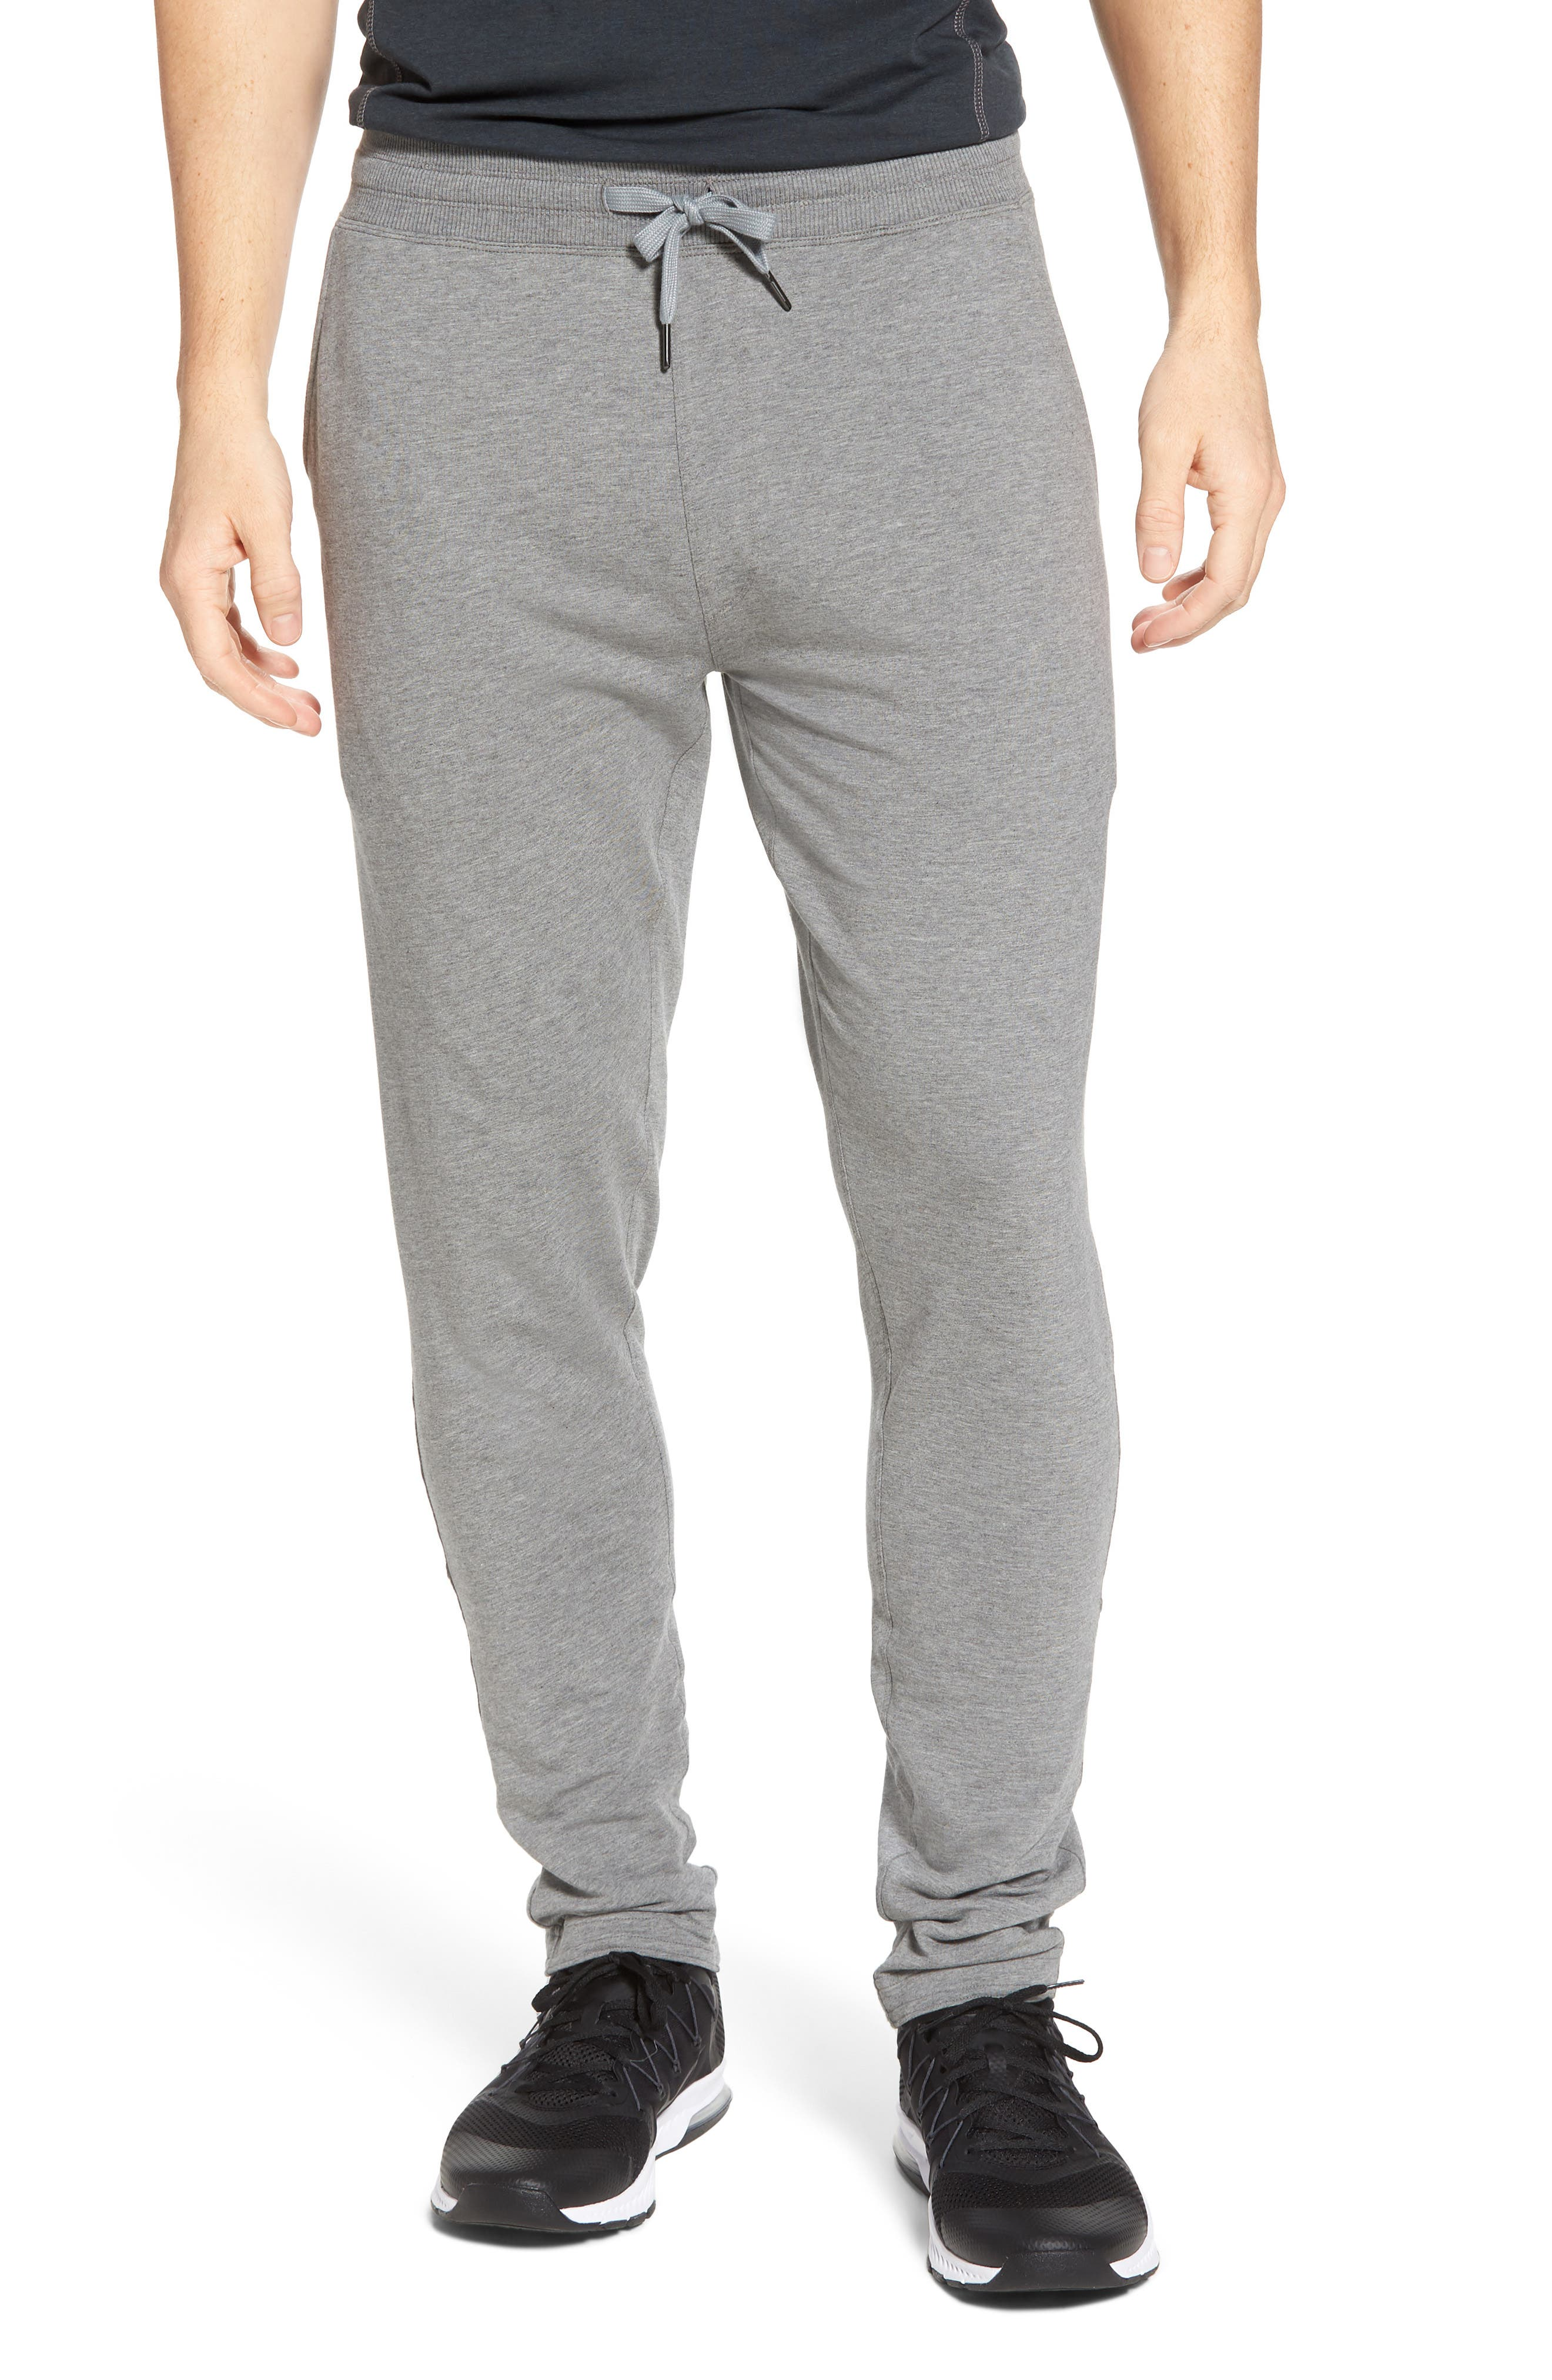 Legacy Lounge Pants,                         Main,                         color, Heather Grey